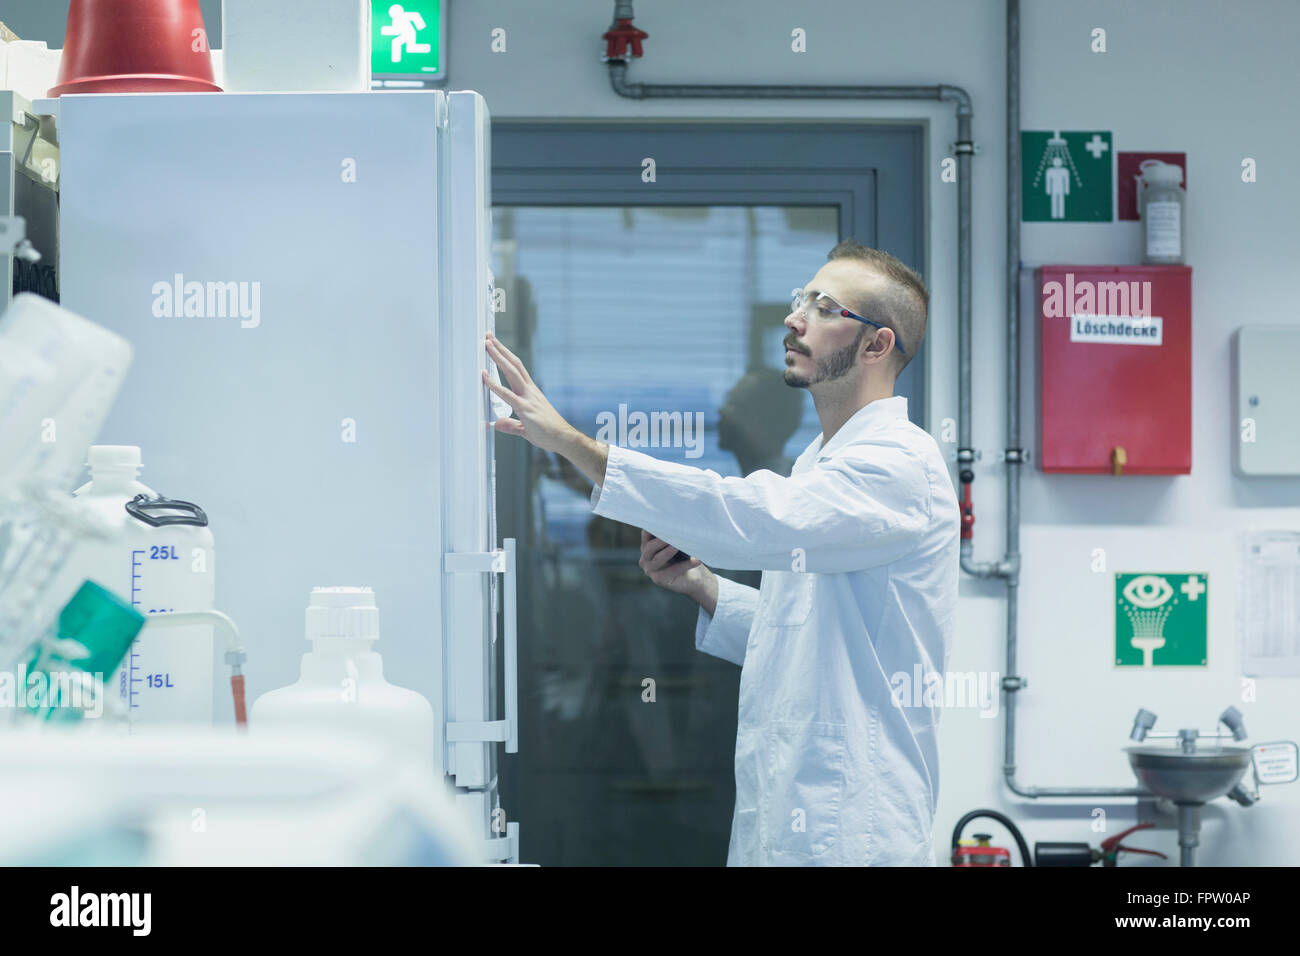 Young male scientist reading notes in a pharmacy laboratory, Freiburg Im Breisgau, Baden-Württemberg, Germany - Stock Image